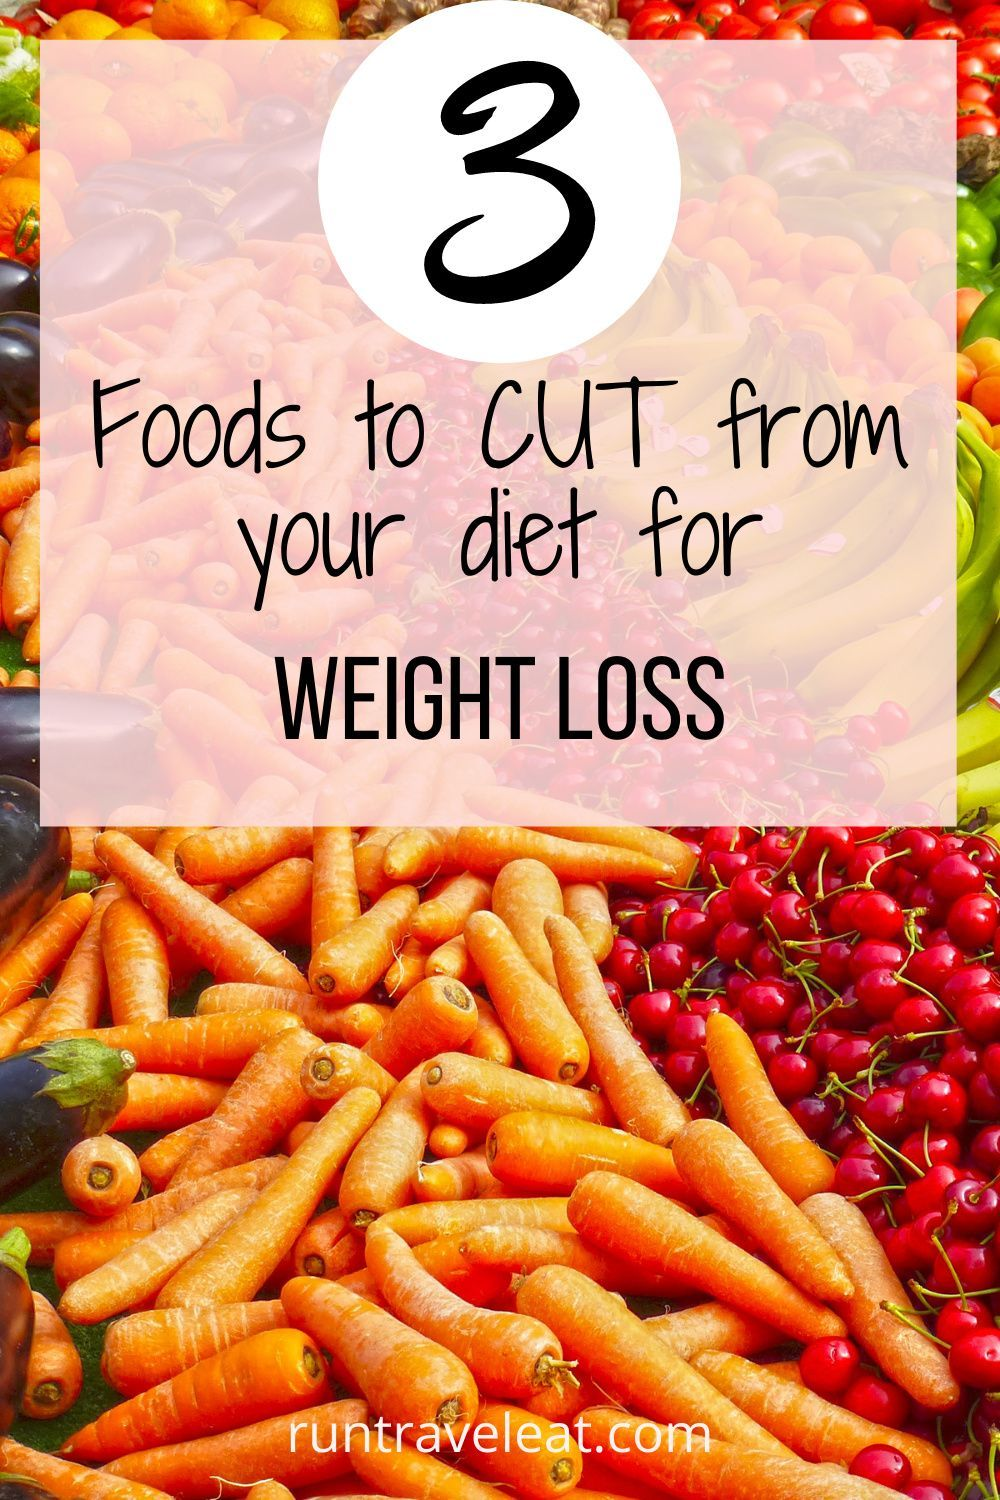 Stop eating these foods immediately to maximize your weight loss. These three foods are holding you back from living a healthy lifestyle. #weightlosstips #diettips #healthyeatingtips #healthyeatinglist #healthyeating #diettipsforbeginners